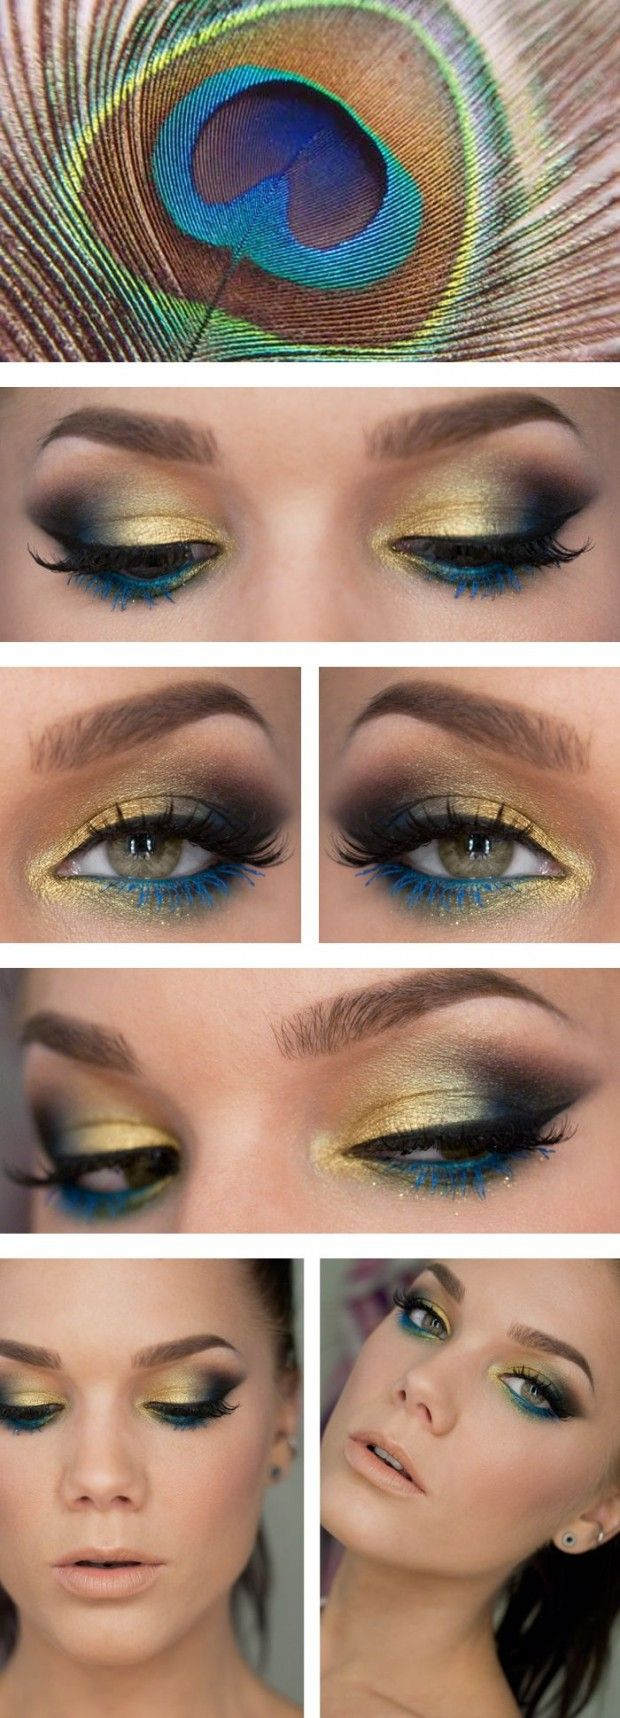 23 Gorgeous Eye-Makeup Tutorials -- I think this woman is really pretty